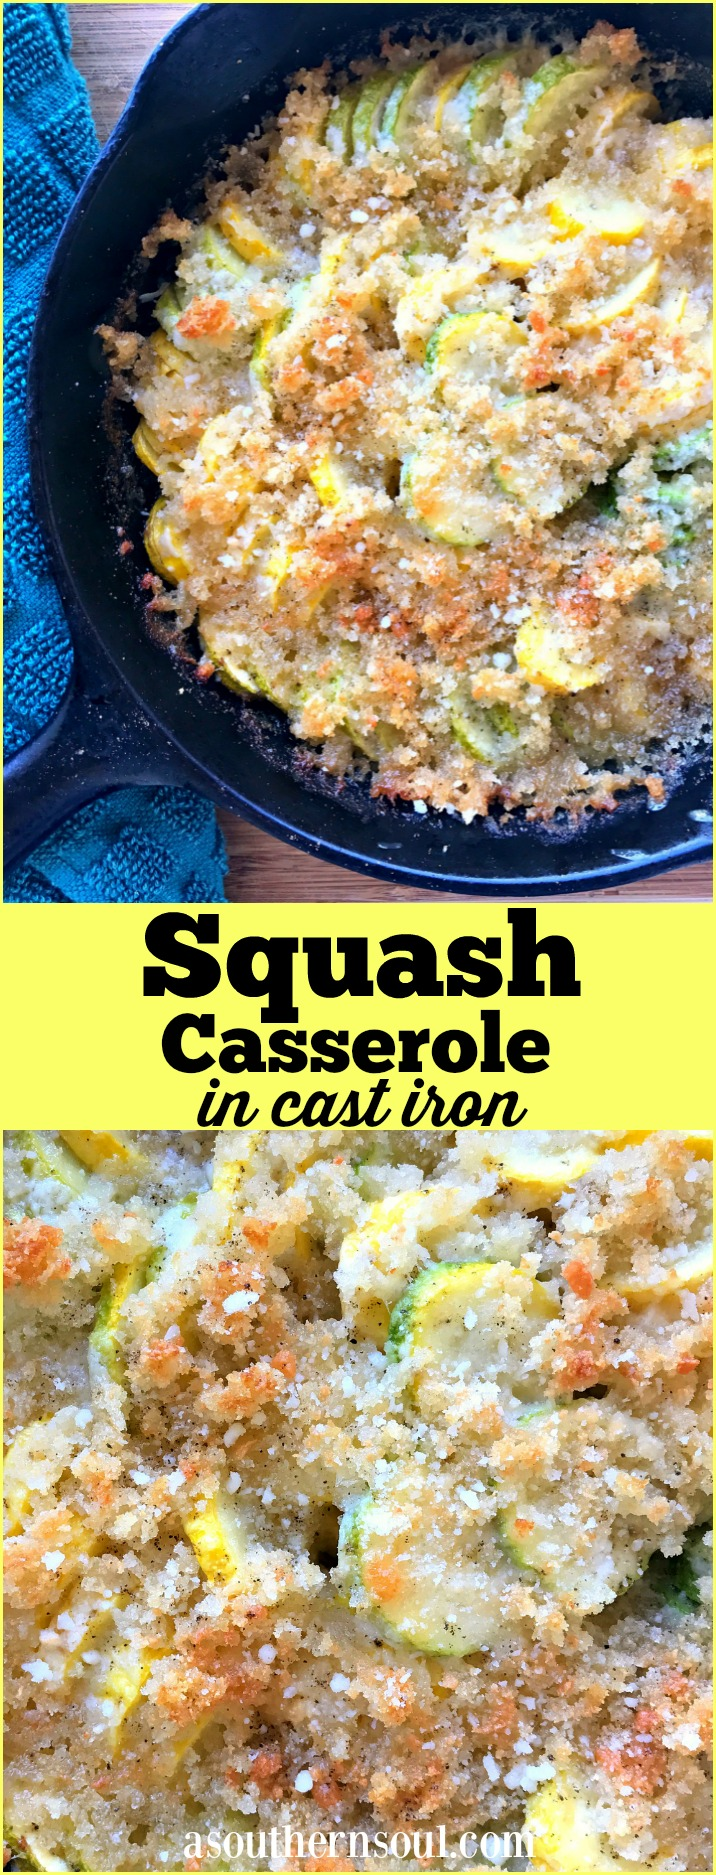 Yellow squash cooked in a cast iron skillet is a new take on a southern favorite dish. Lightened up a bit with all the flavors you love. Topped with a cheesy, buttery crust for a simple, delicious side dish.